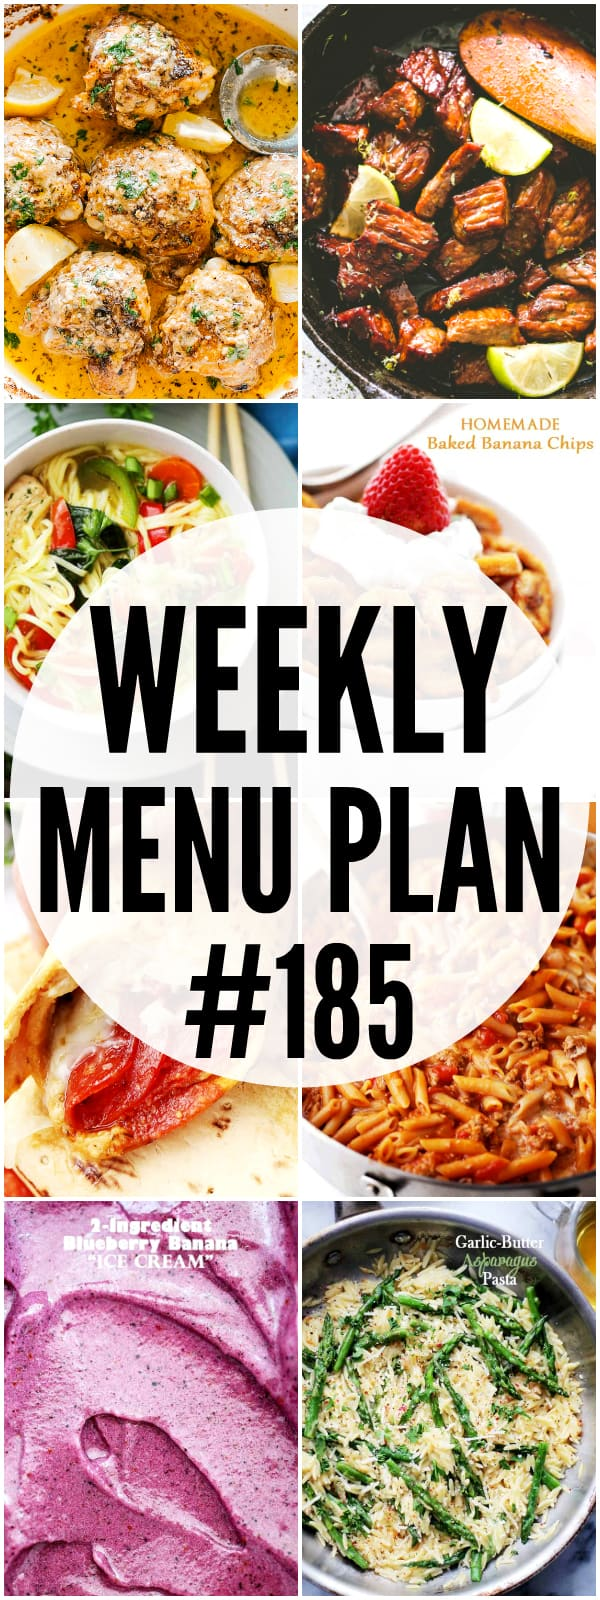 WEEKLY MENU PLAN #185